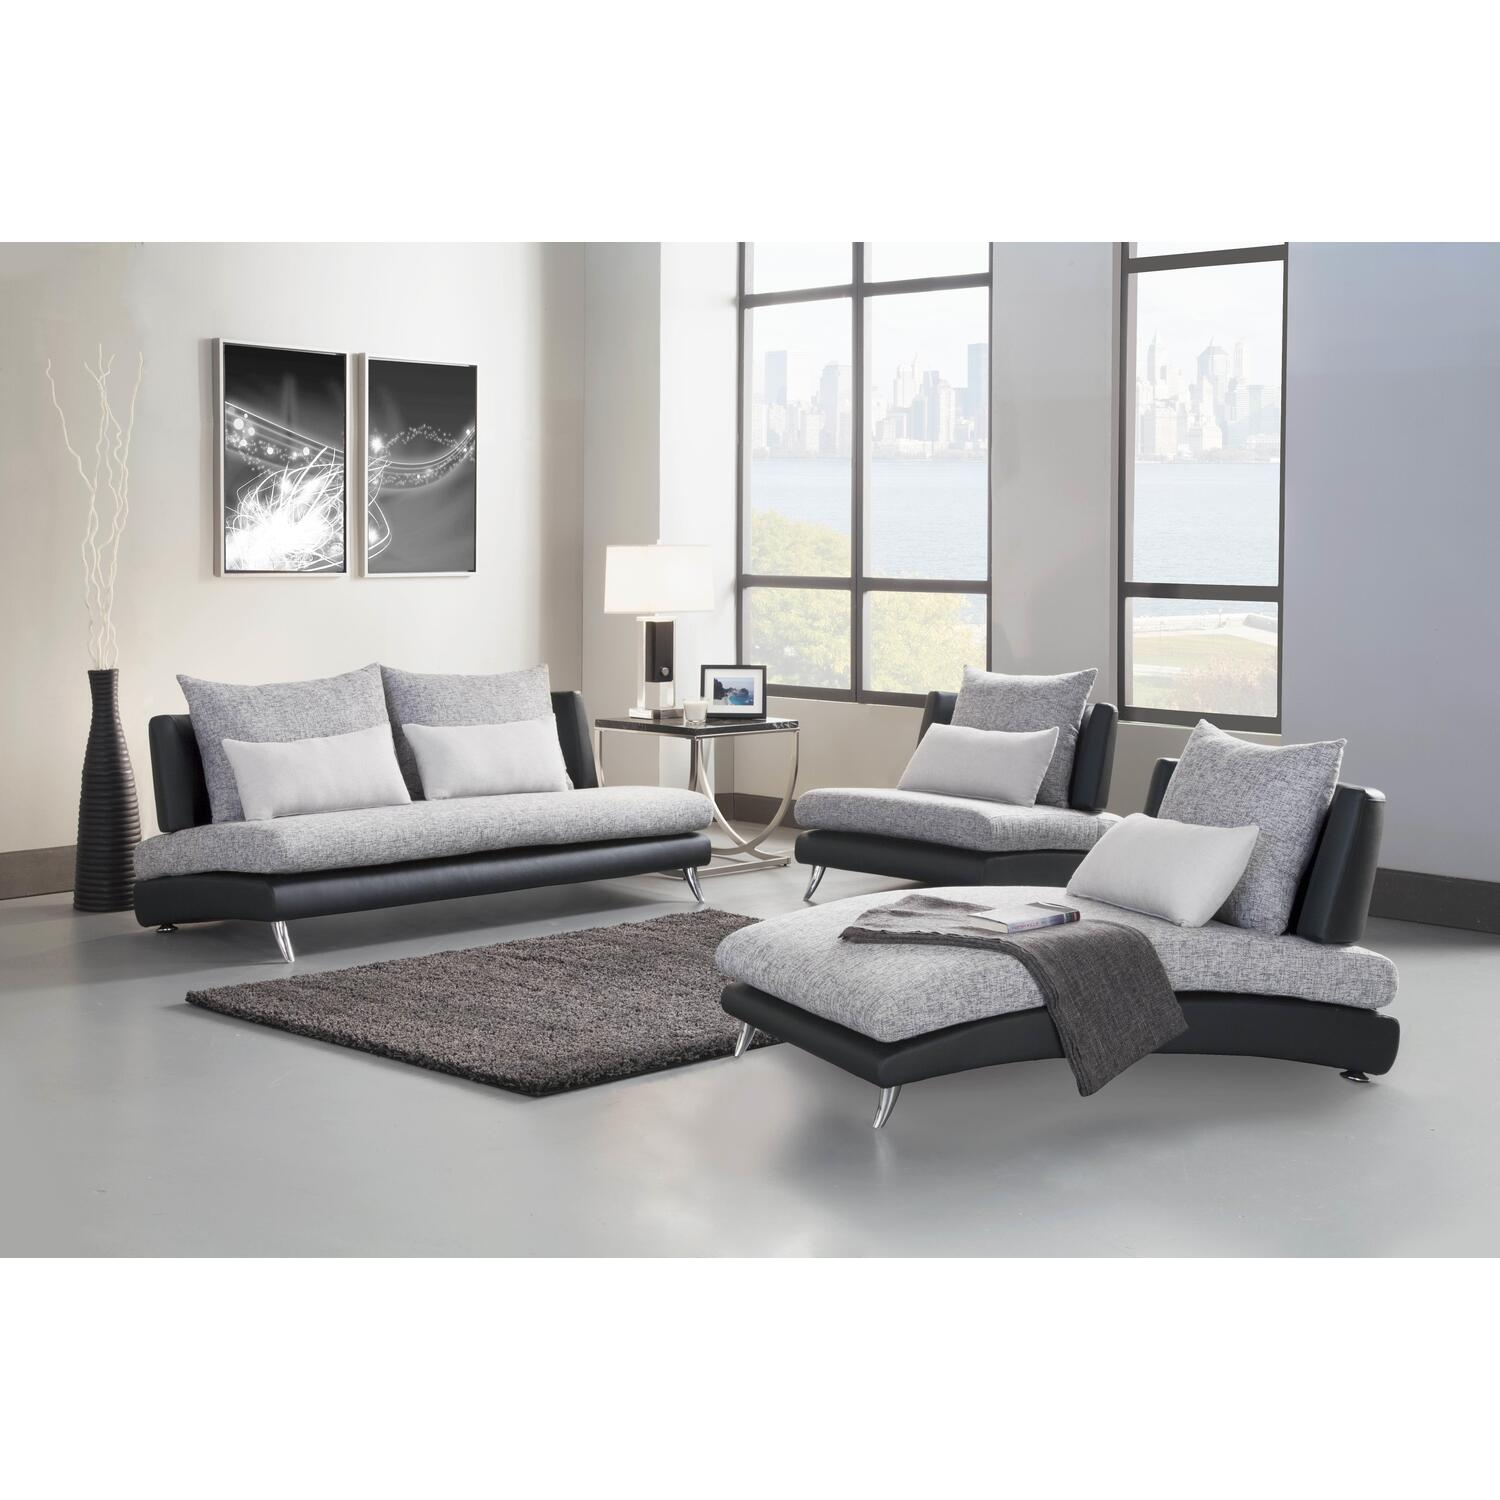 Homelegance renton living room set by oj commerce 1 444 for Designer living room sets